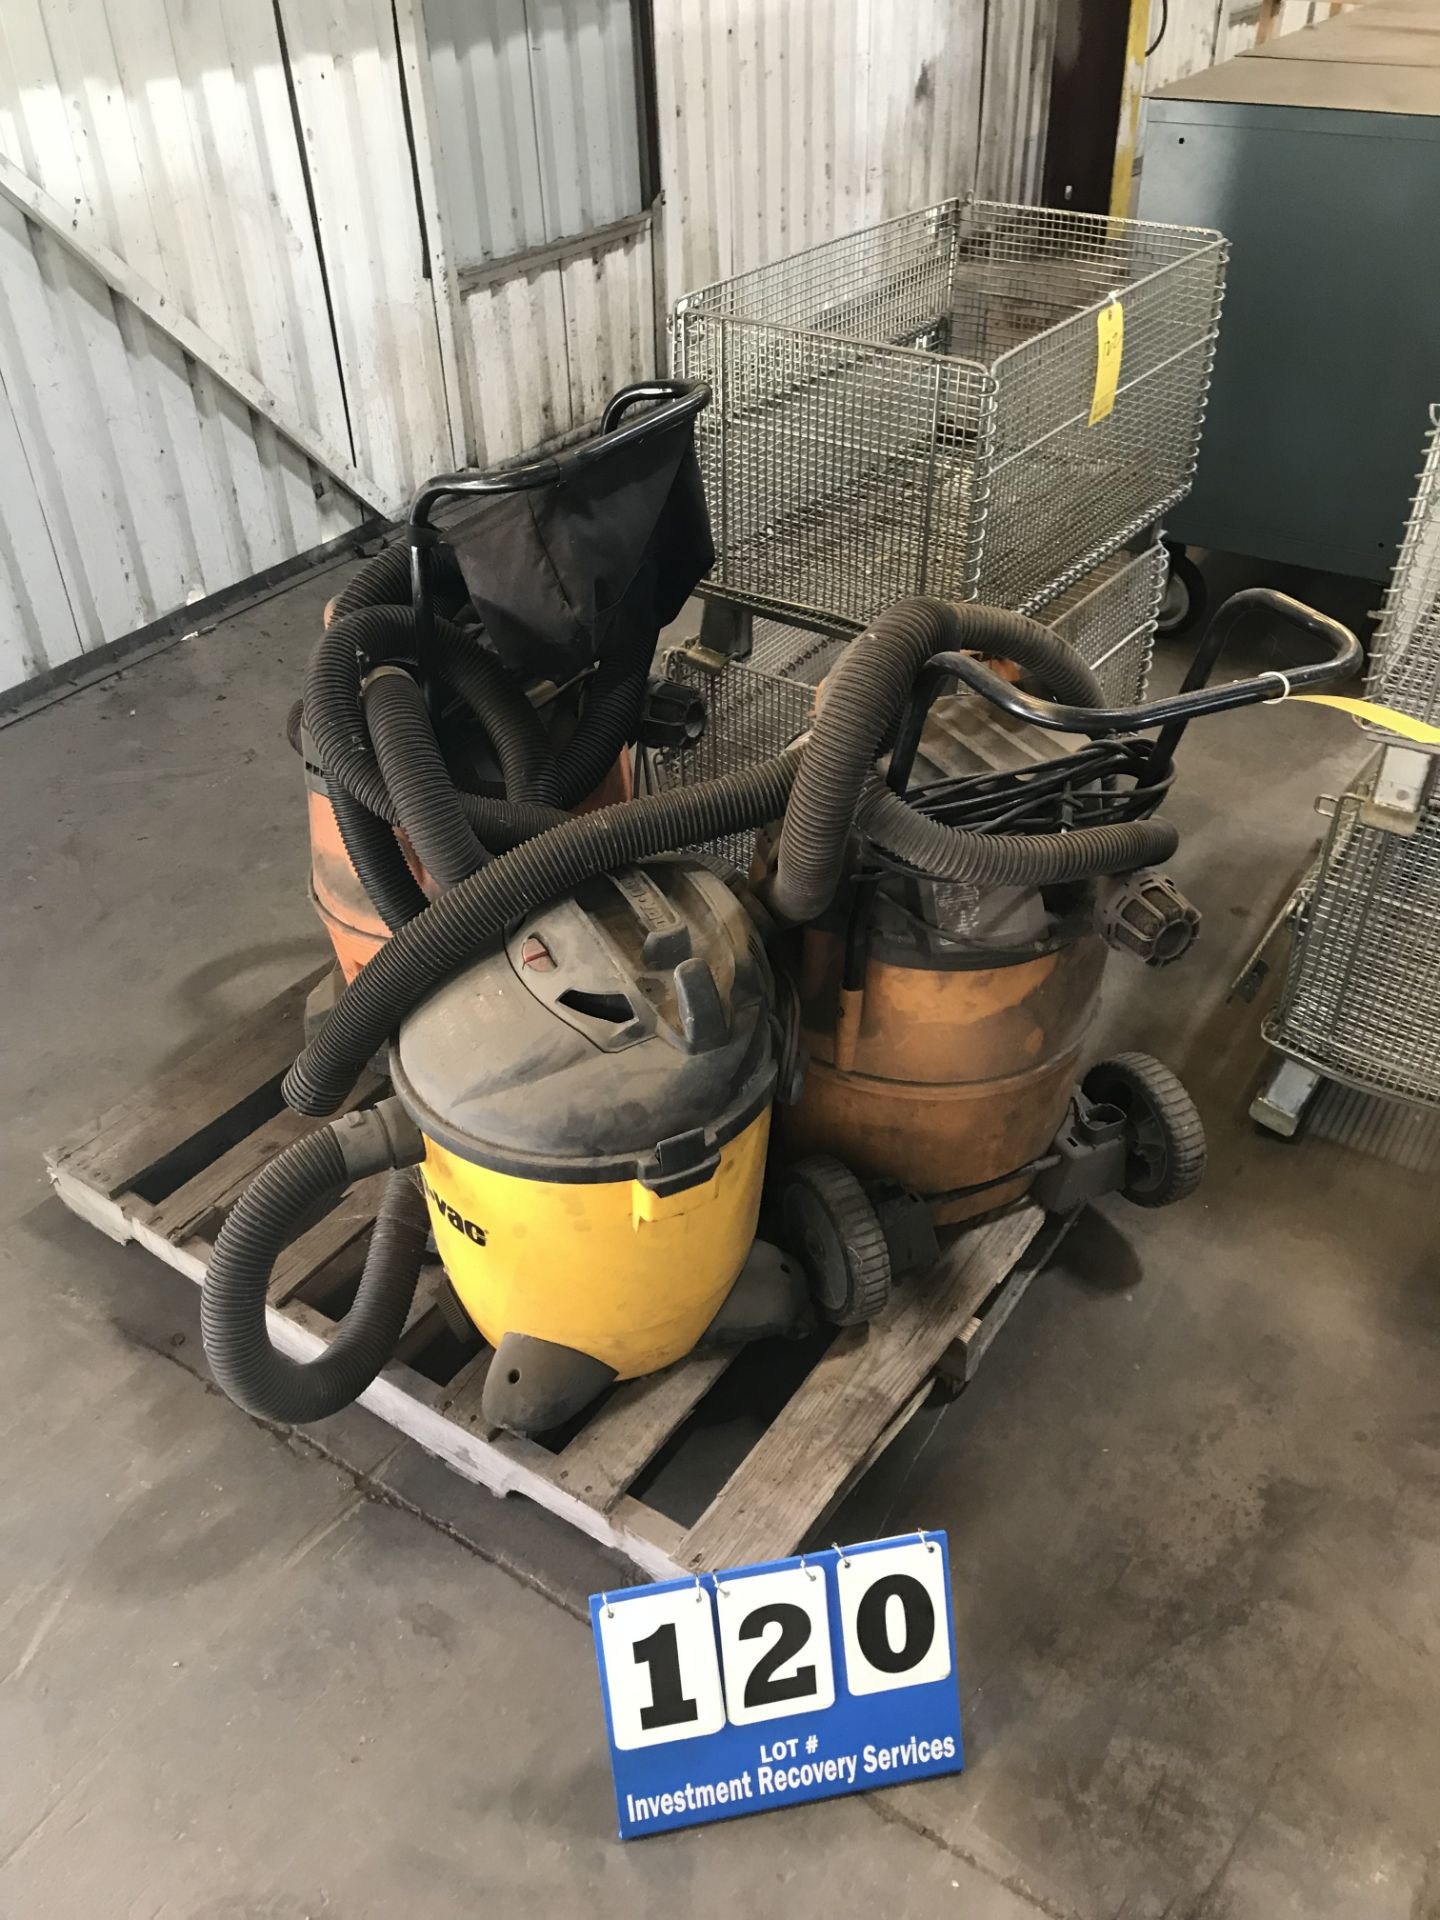 Lot 120 - (3) Shop Vacuum (LOCATION: 3421 N SYLVANIA, FT WORTH, TX, 76111)